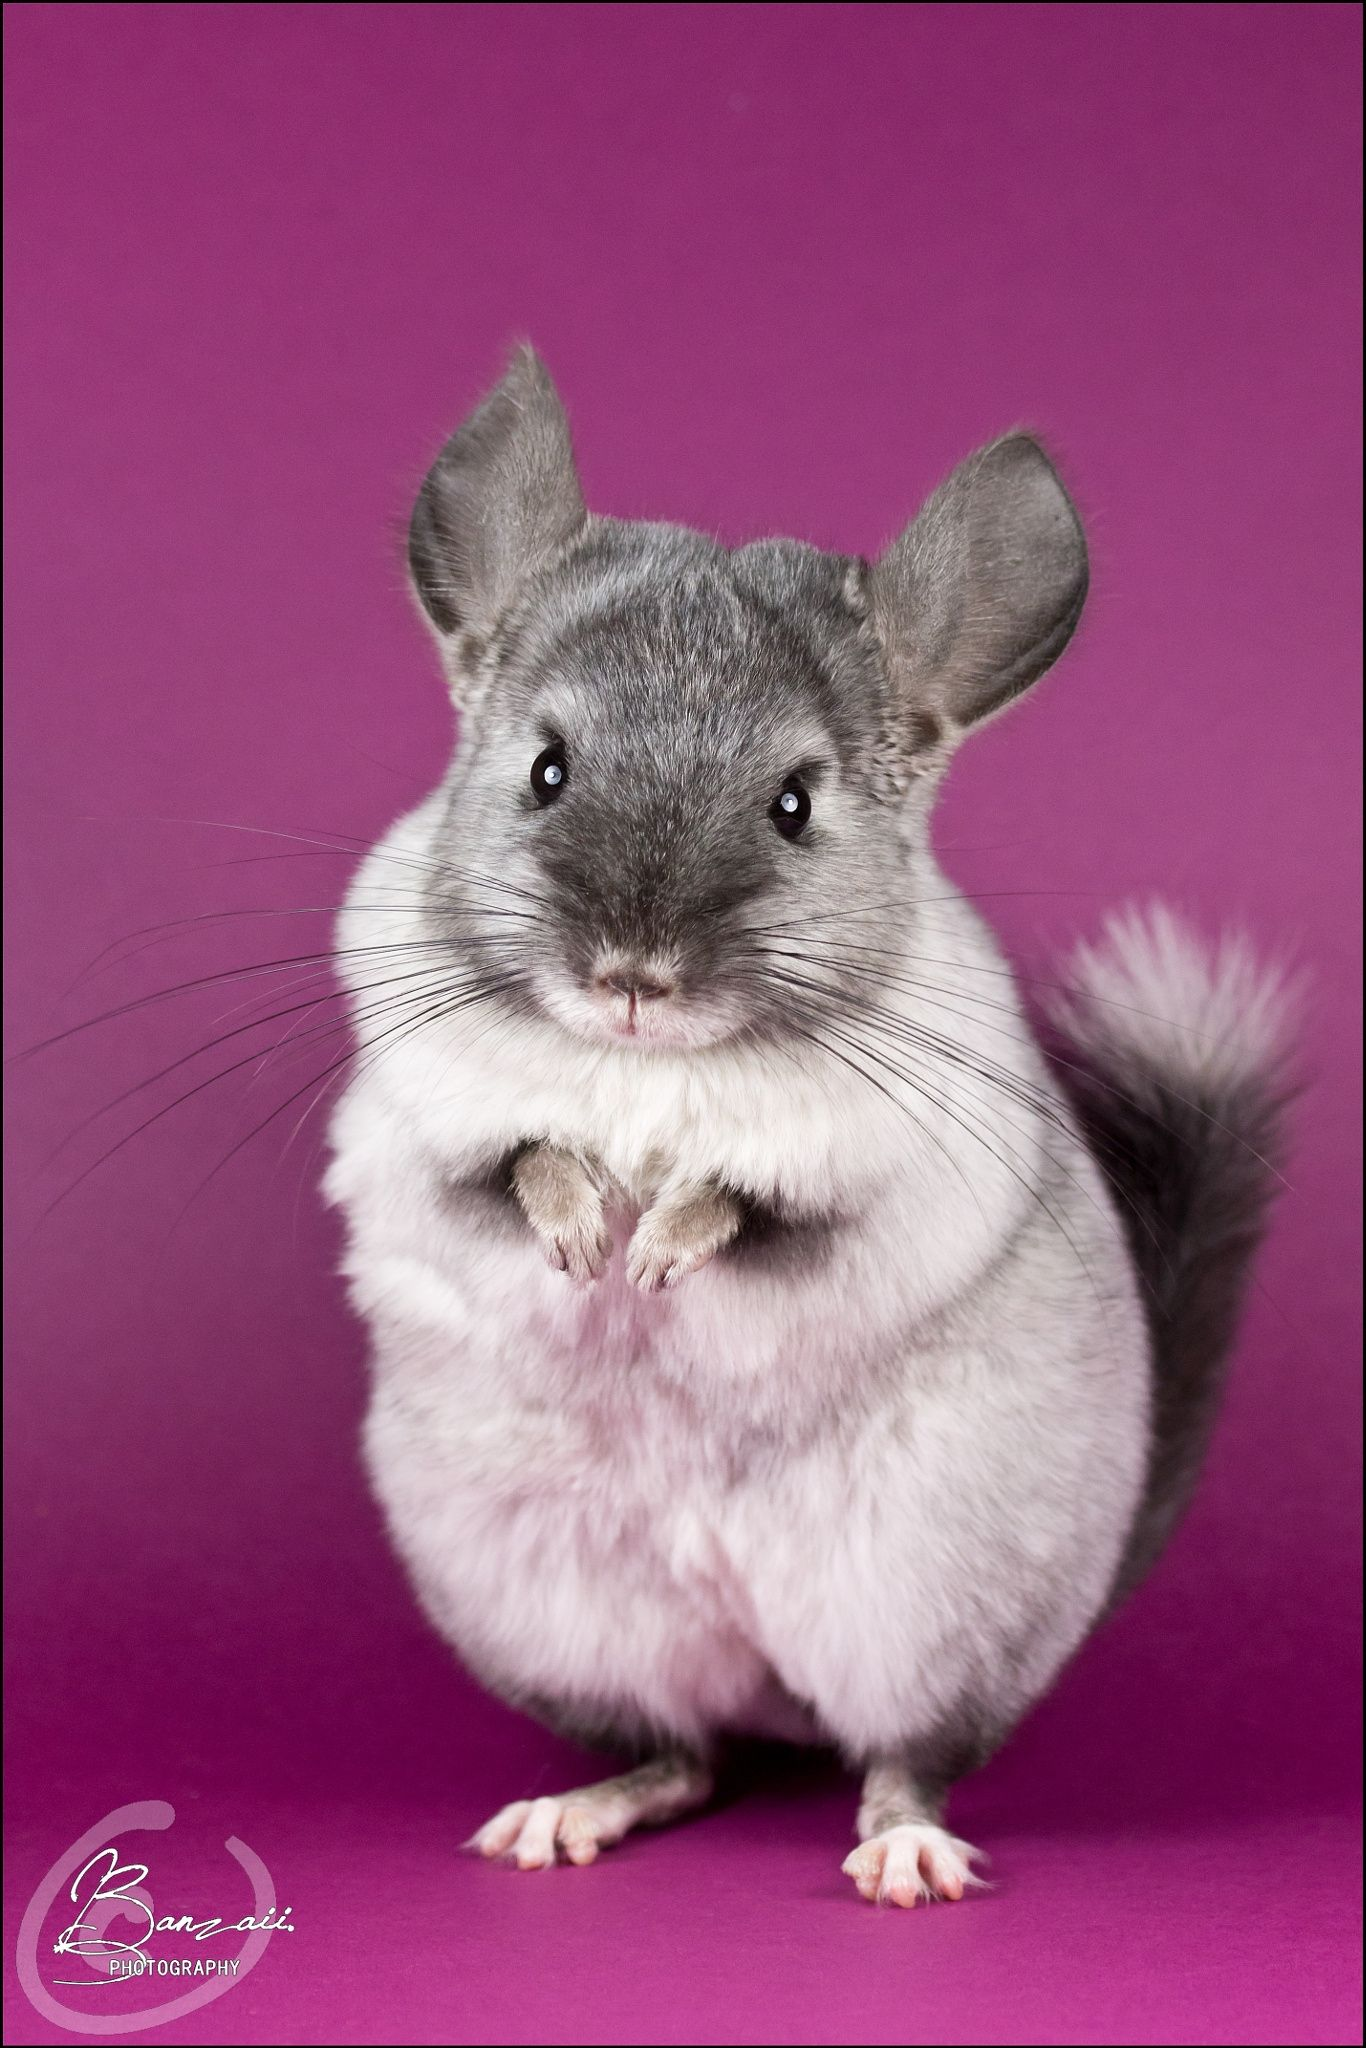 Chinchilla Aquarelle Rodent All Images C By Katheleen Lemaire Banzaii Photography You Ma Cute Animals Animals Beautiful Interesting Animals